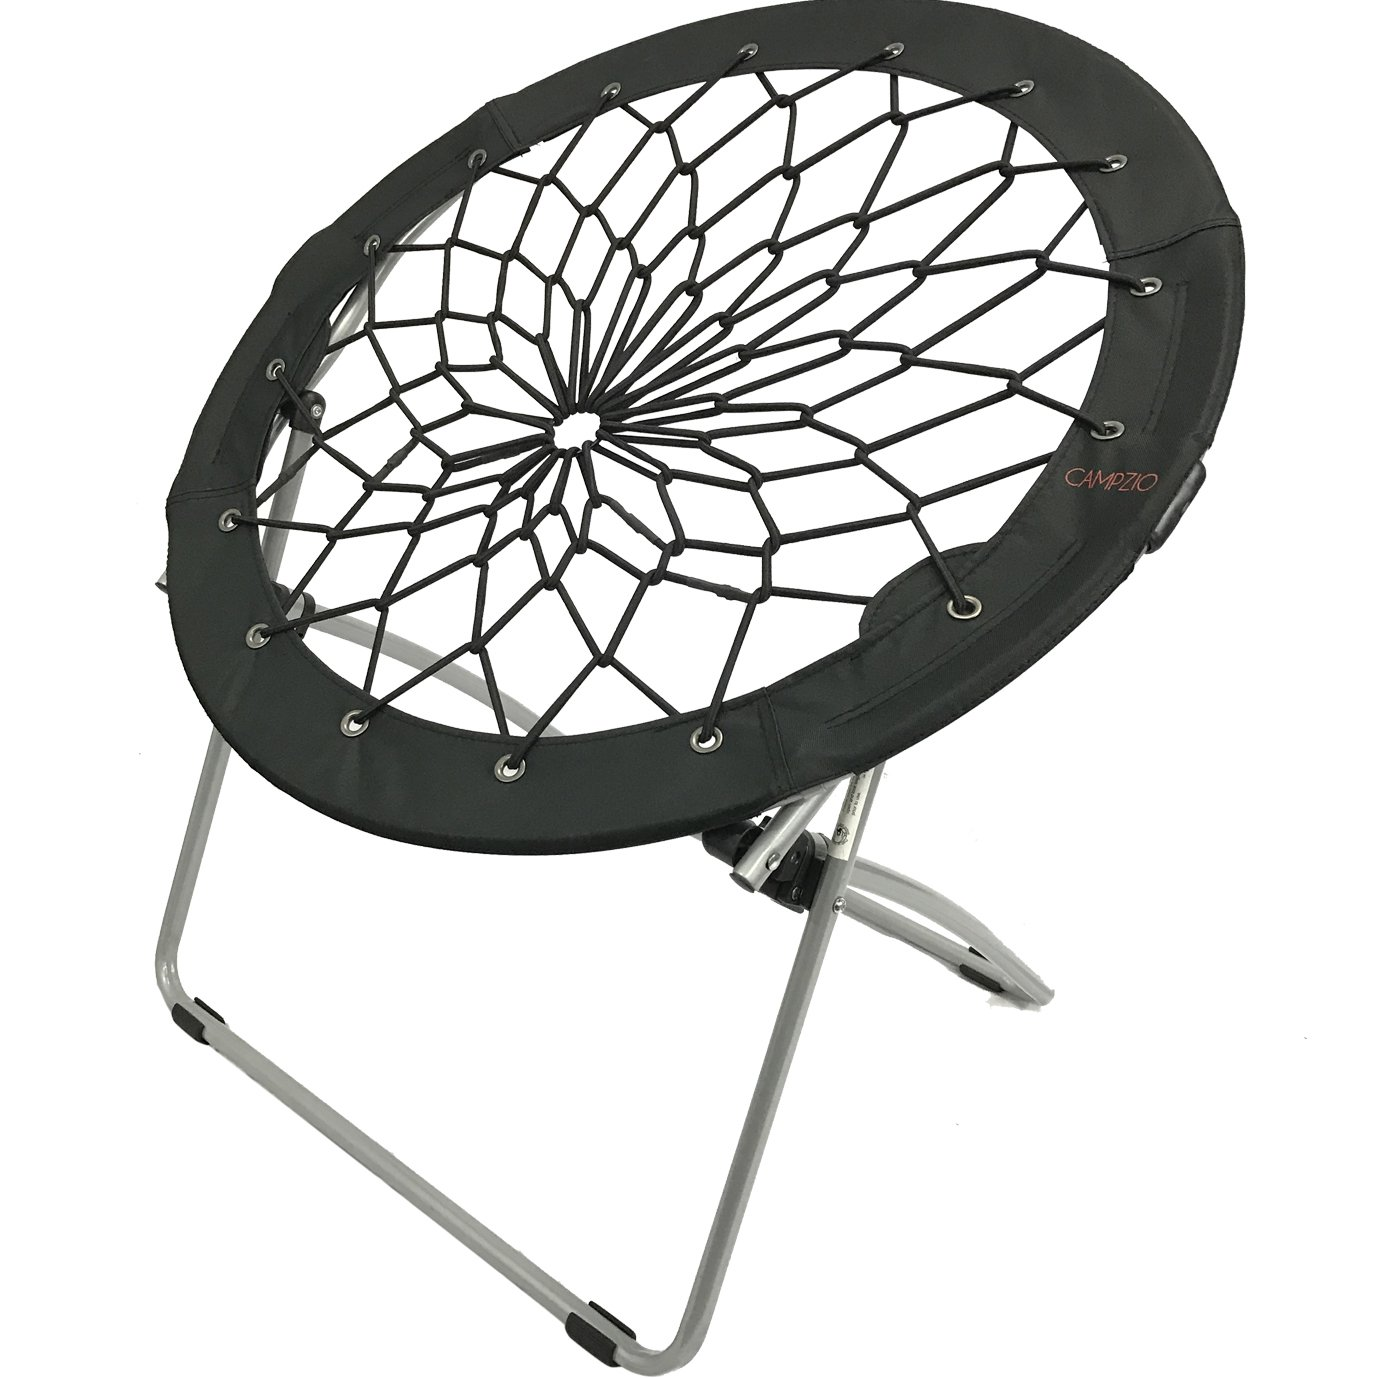 Bungee chair purple - Amazon Com Campzio Bungee Chair Round Bungee Chair Folding Comfortable Lightweight Portable Indoor Outdoor Black Sports Outdoors